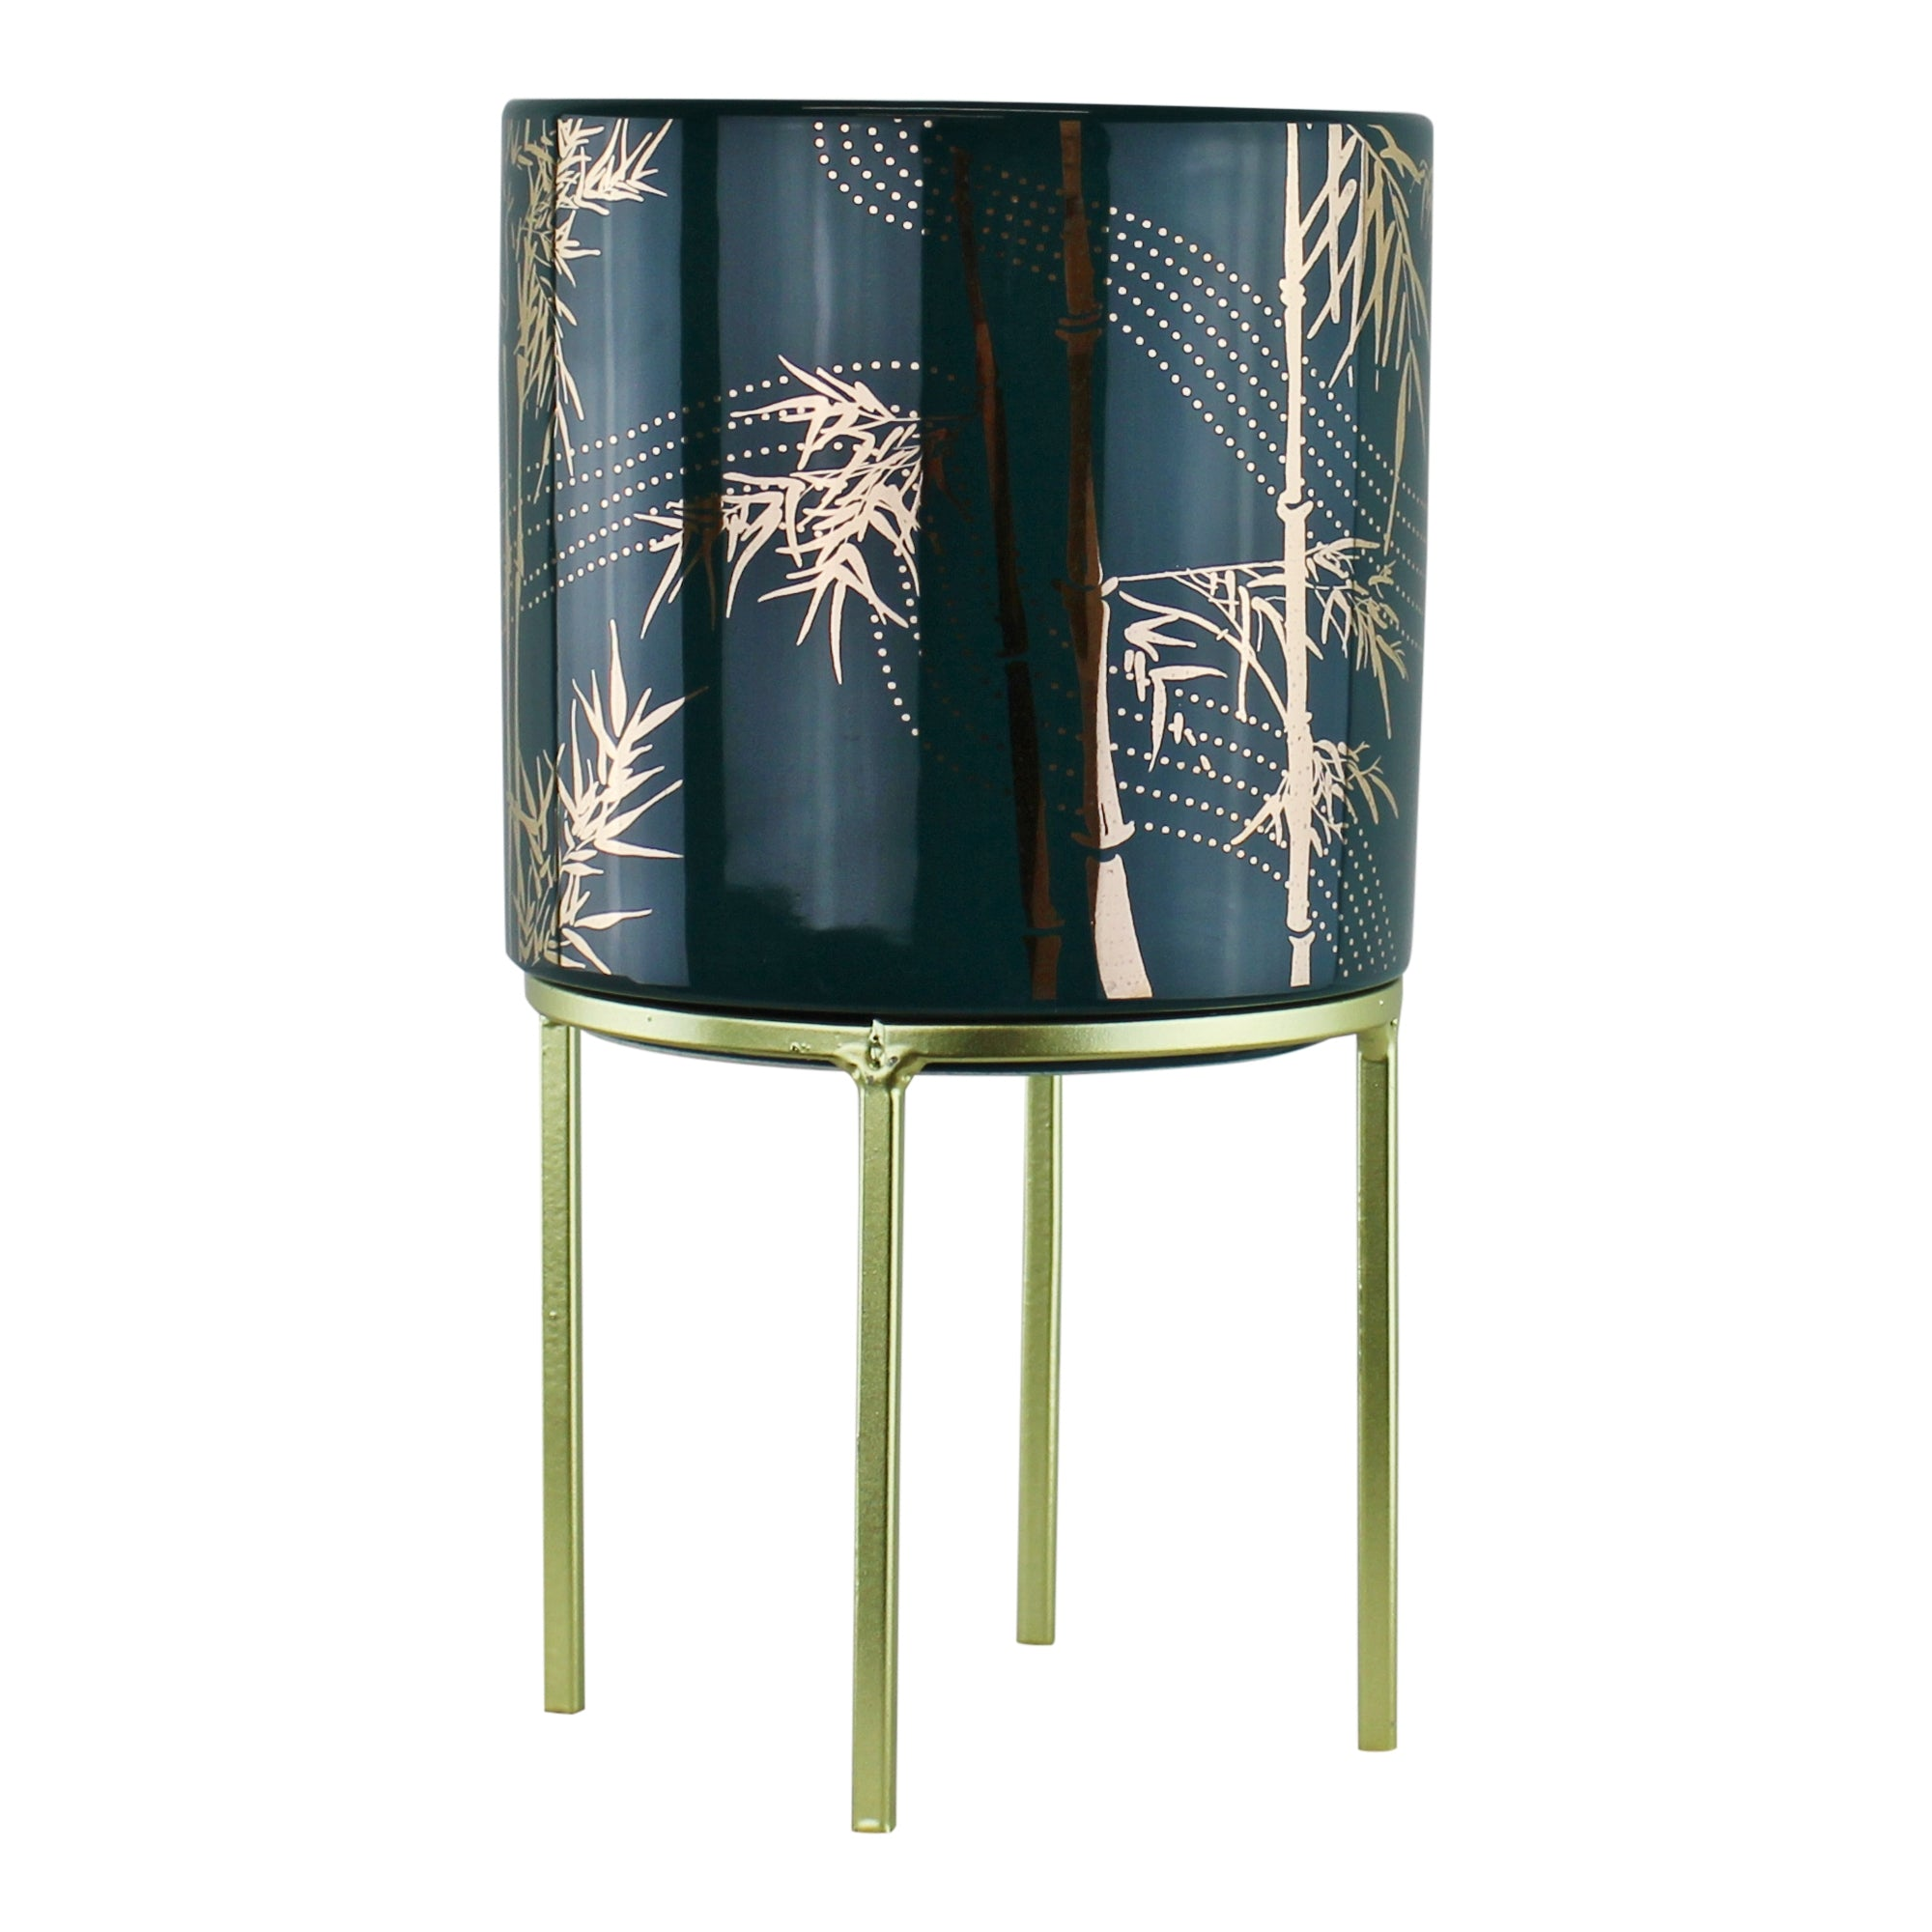 Small Eastern Planter With Stand Featuring Bamboo Design